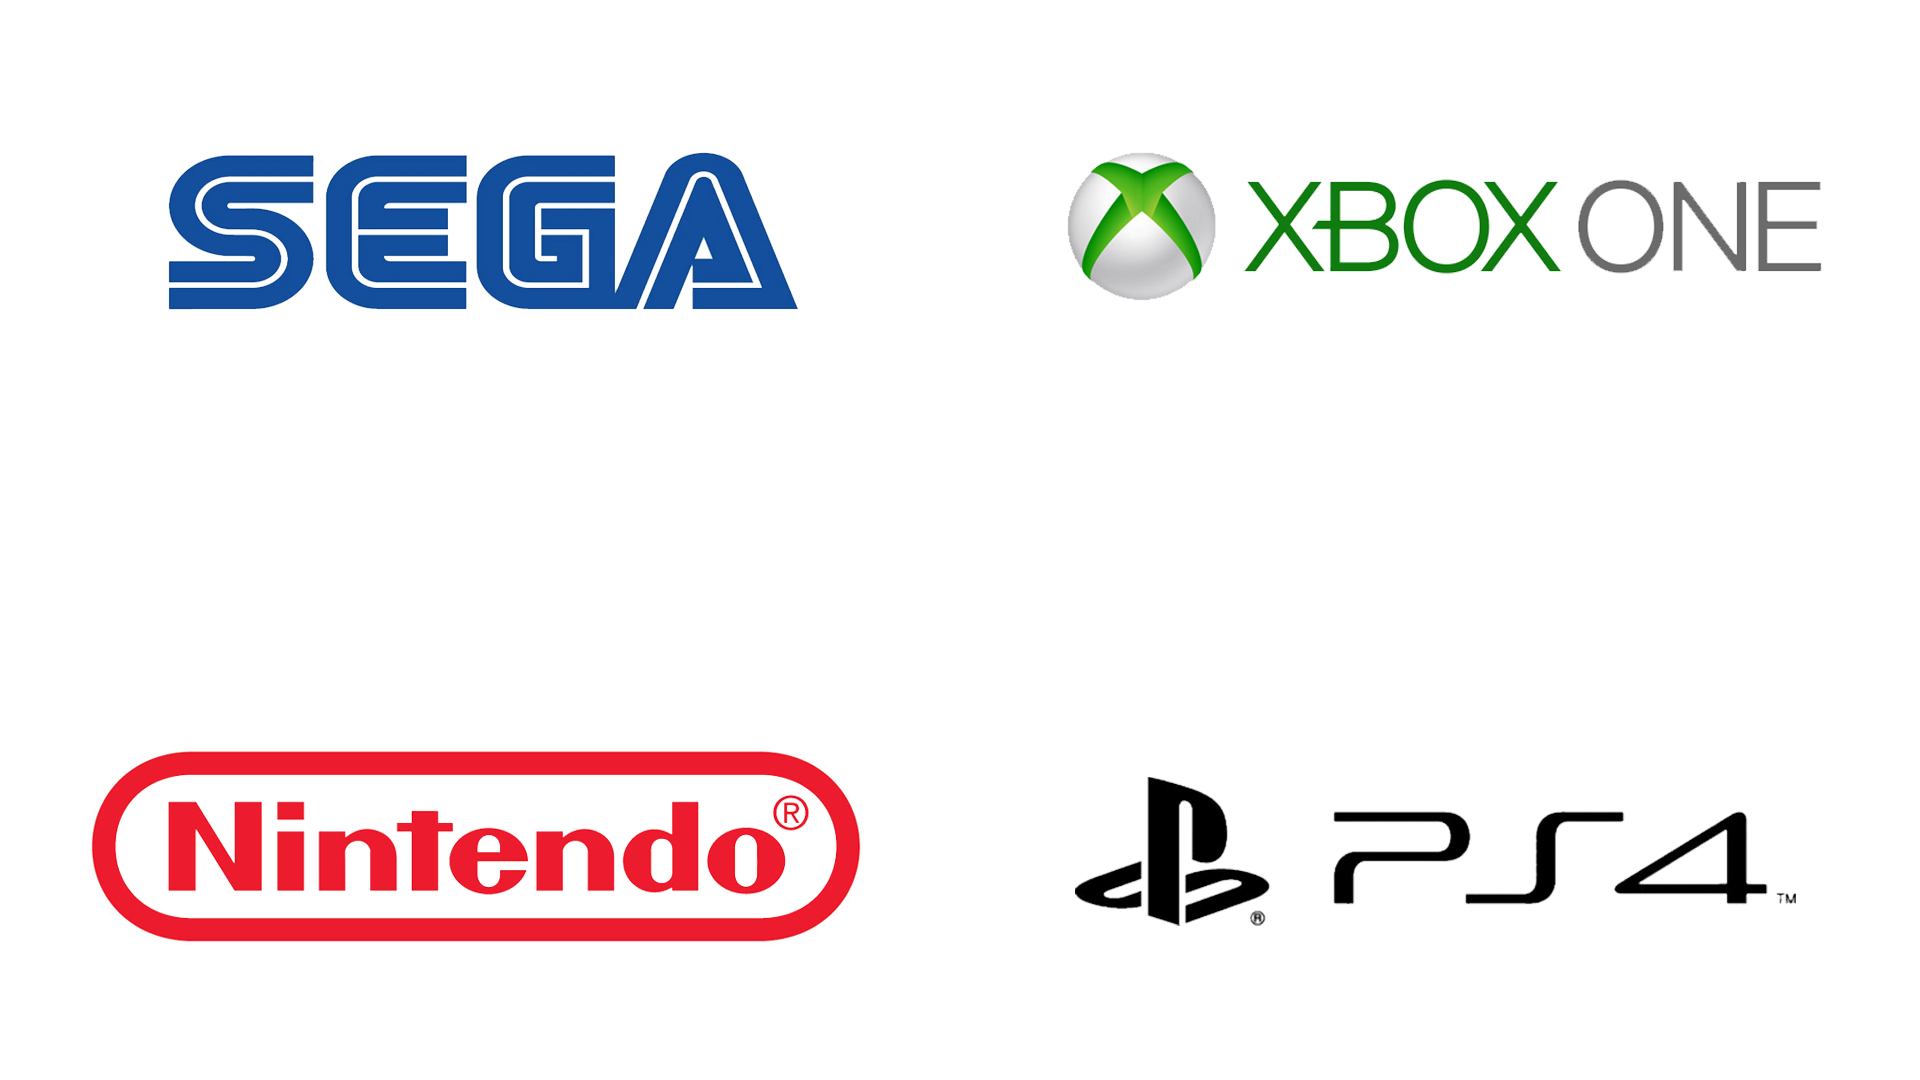 all-is-fair-in-love-and-console-wars-header-image